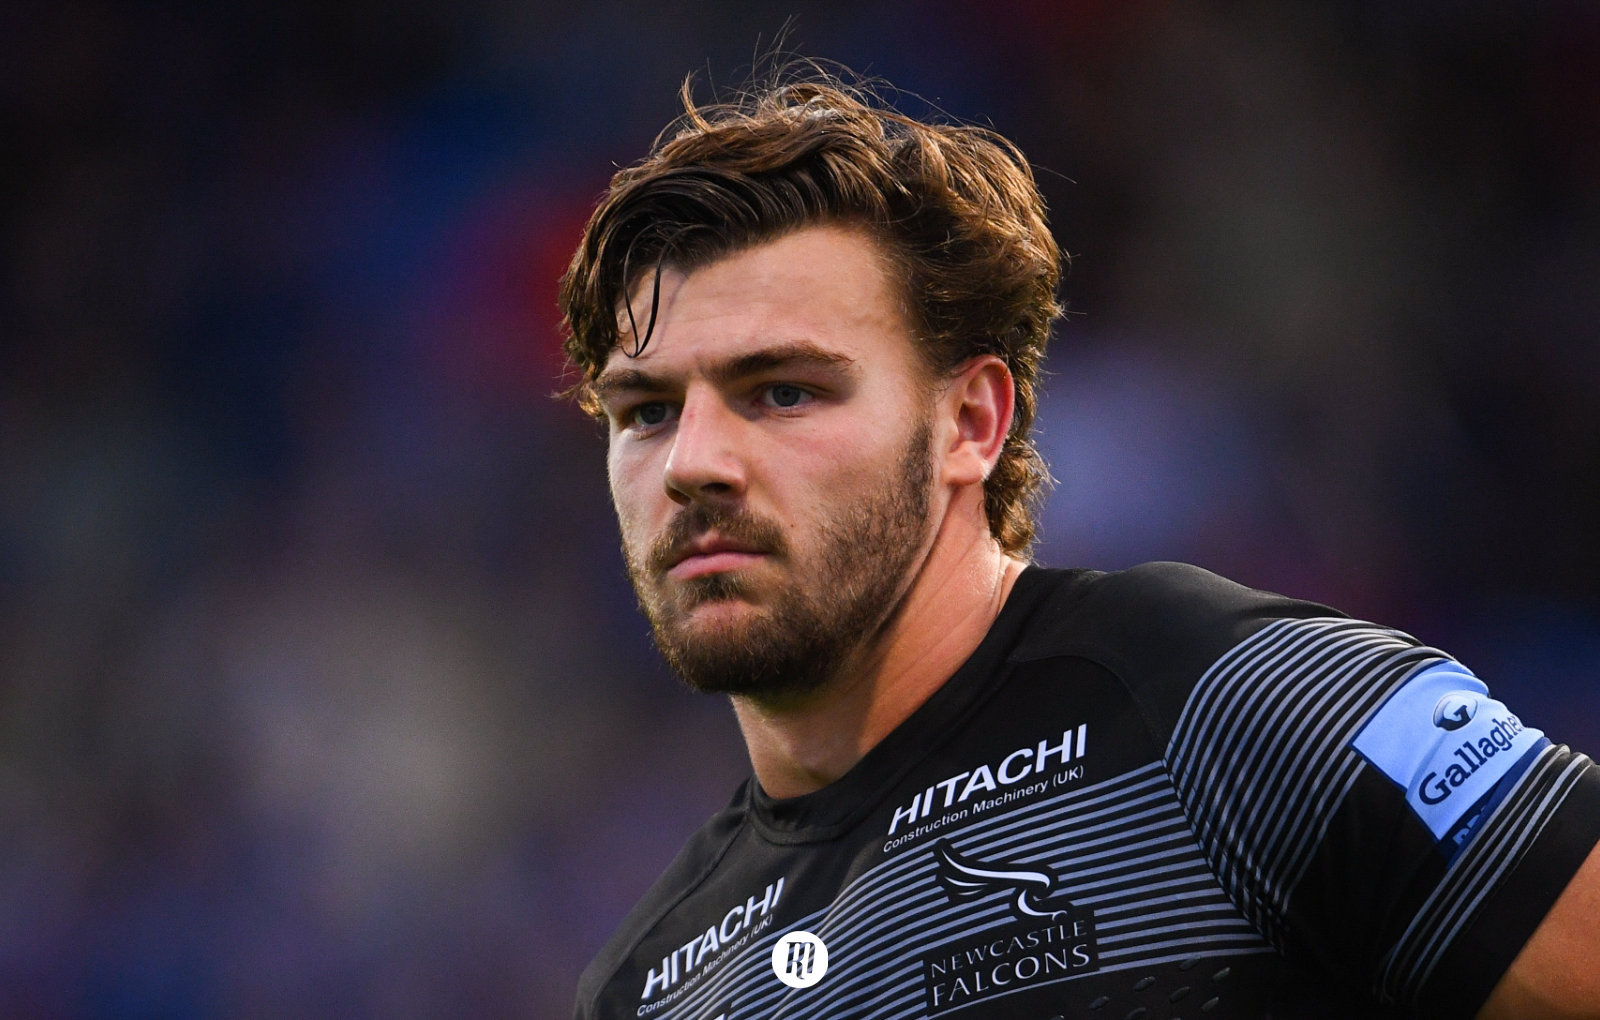 The Falcons star heading England's emerging talent